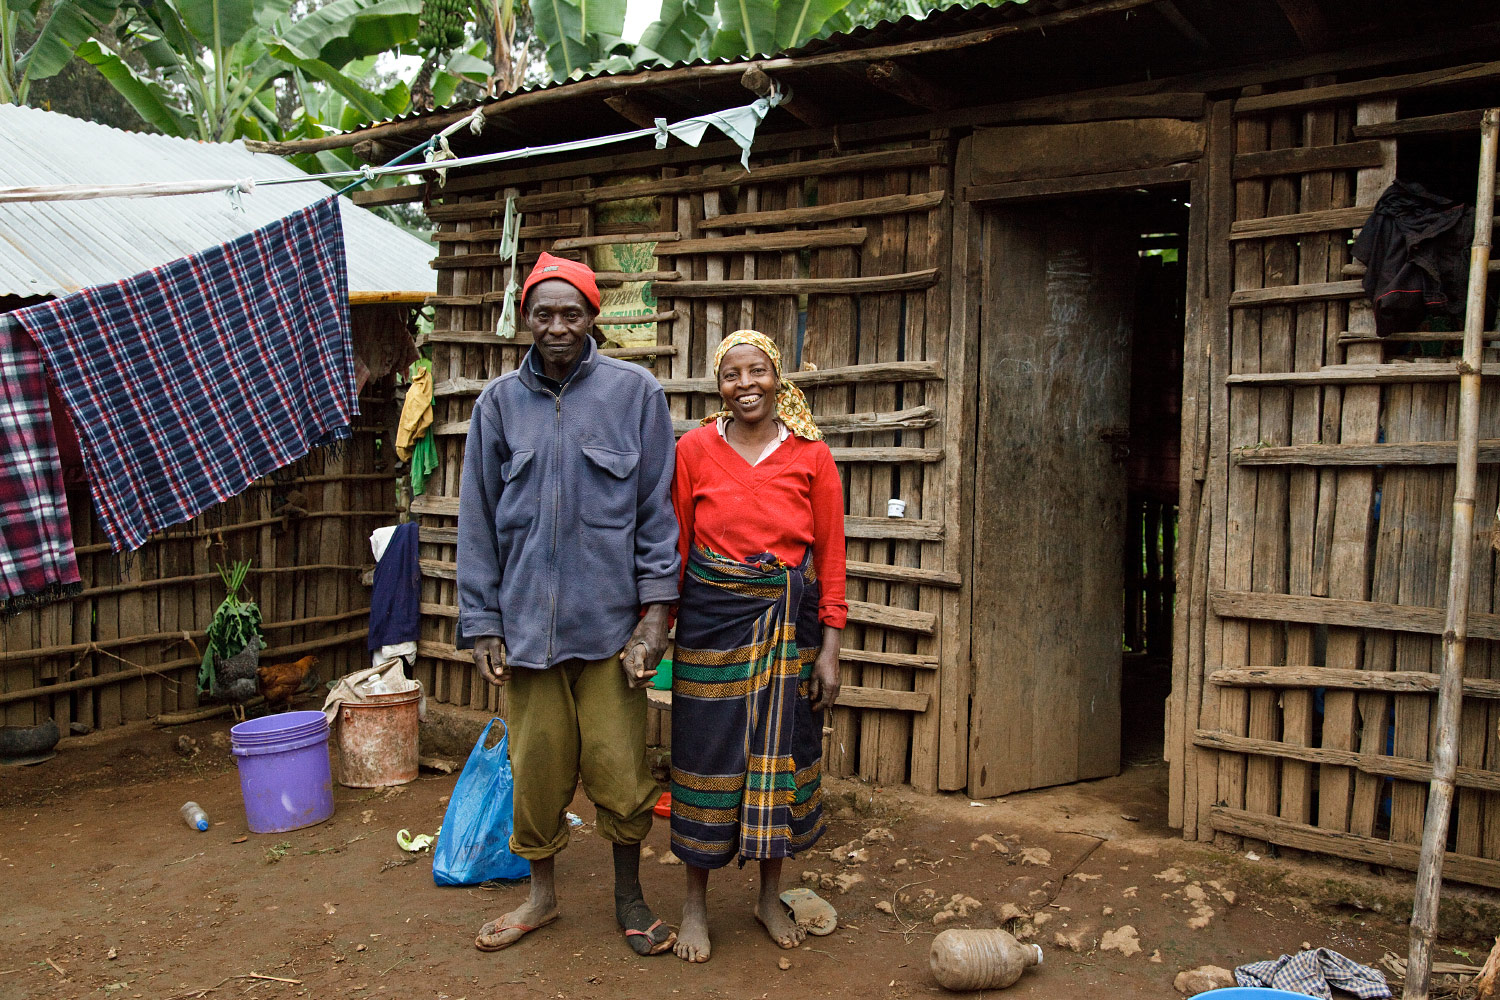 Husband and wife in front of their hut in Kibosho-Umbwe